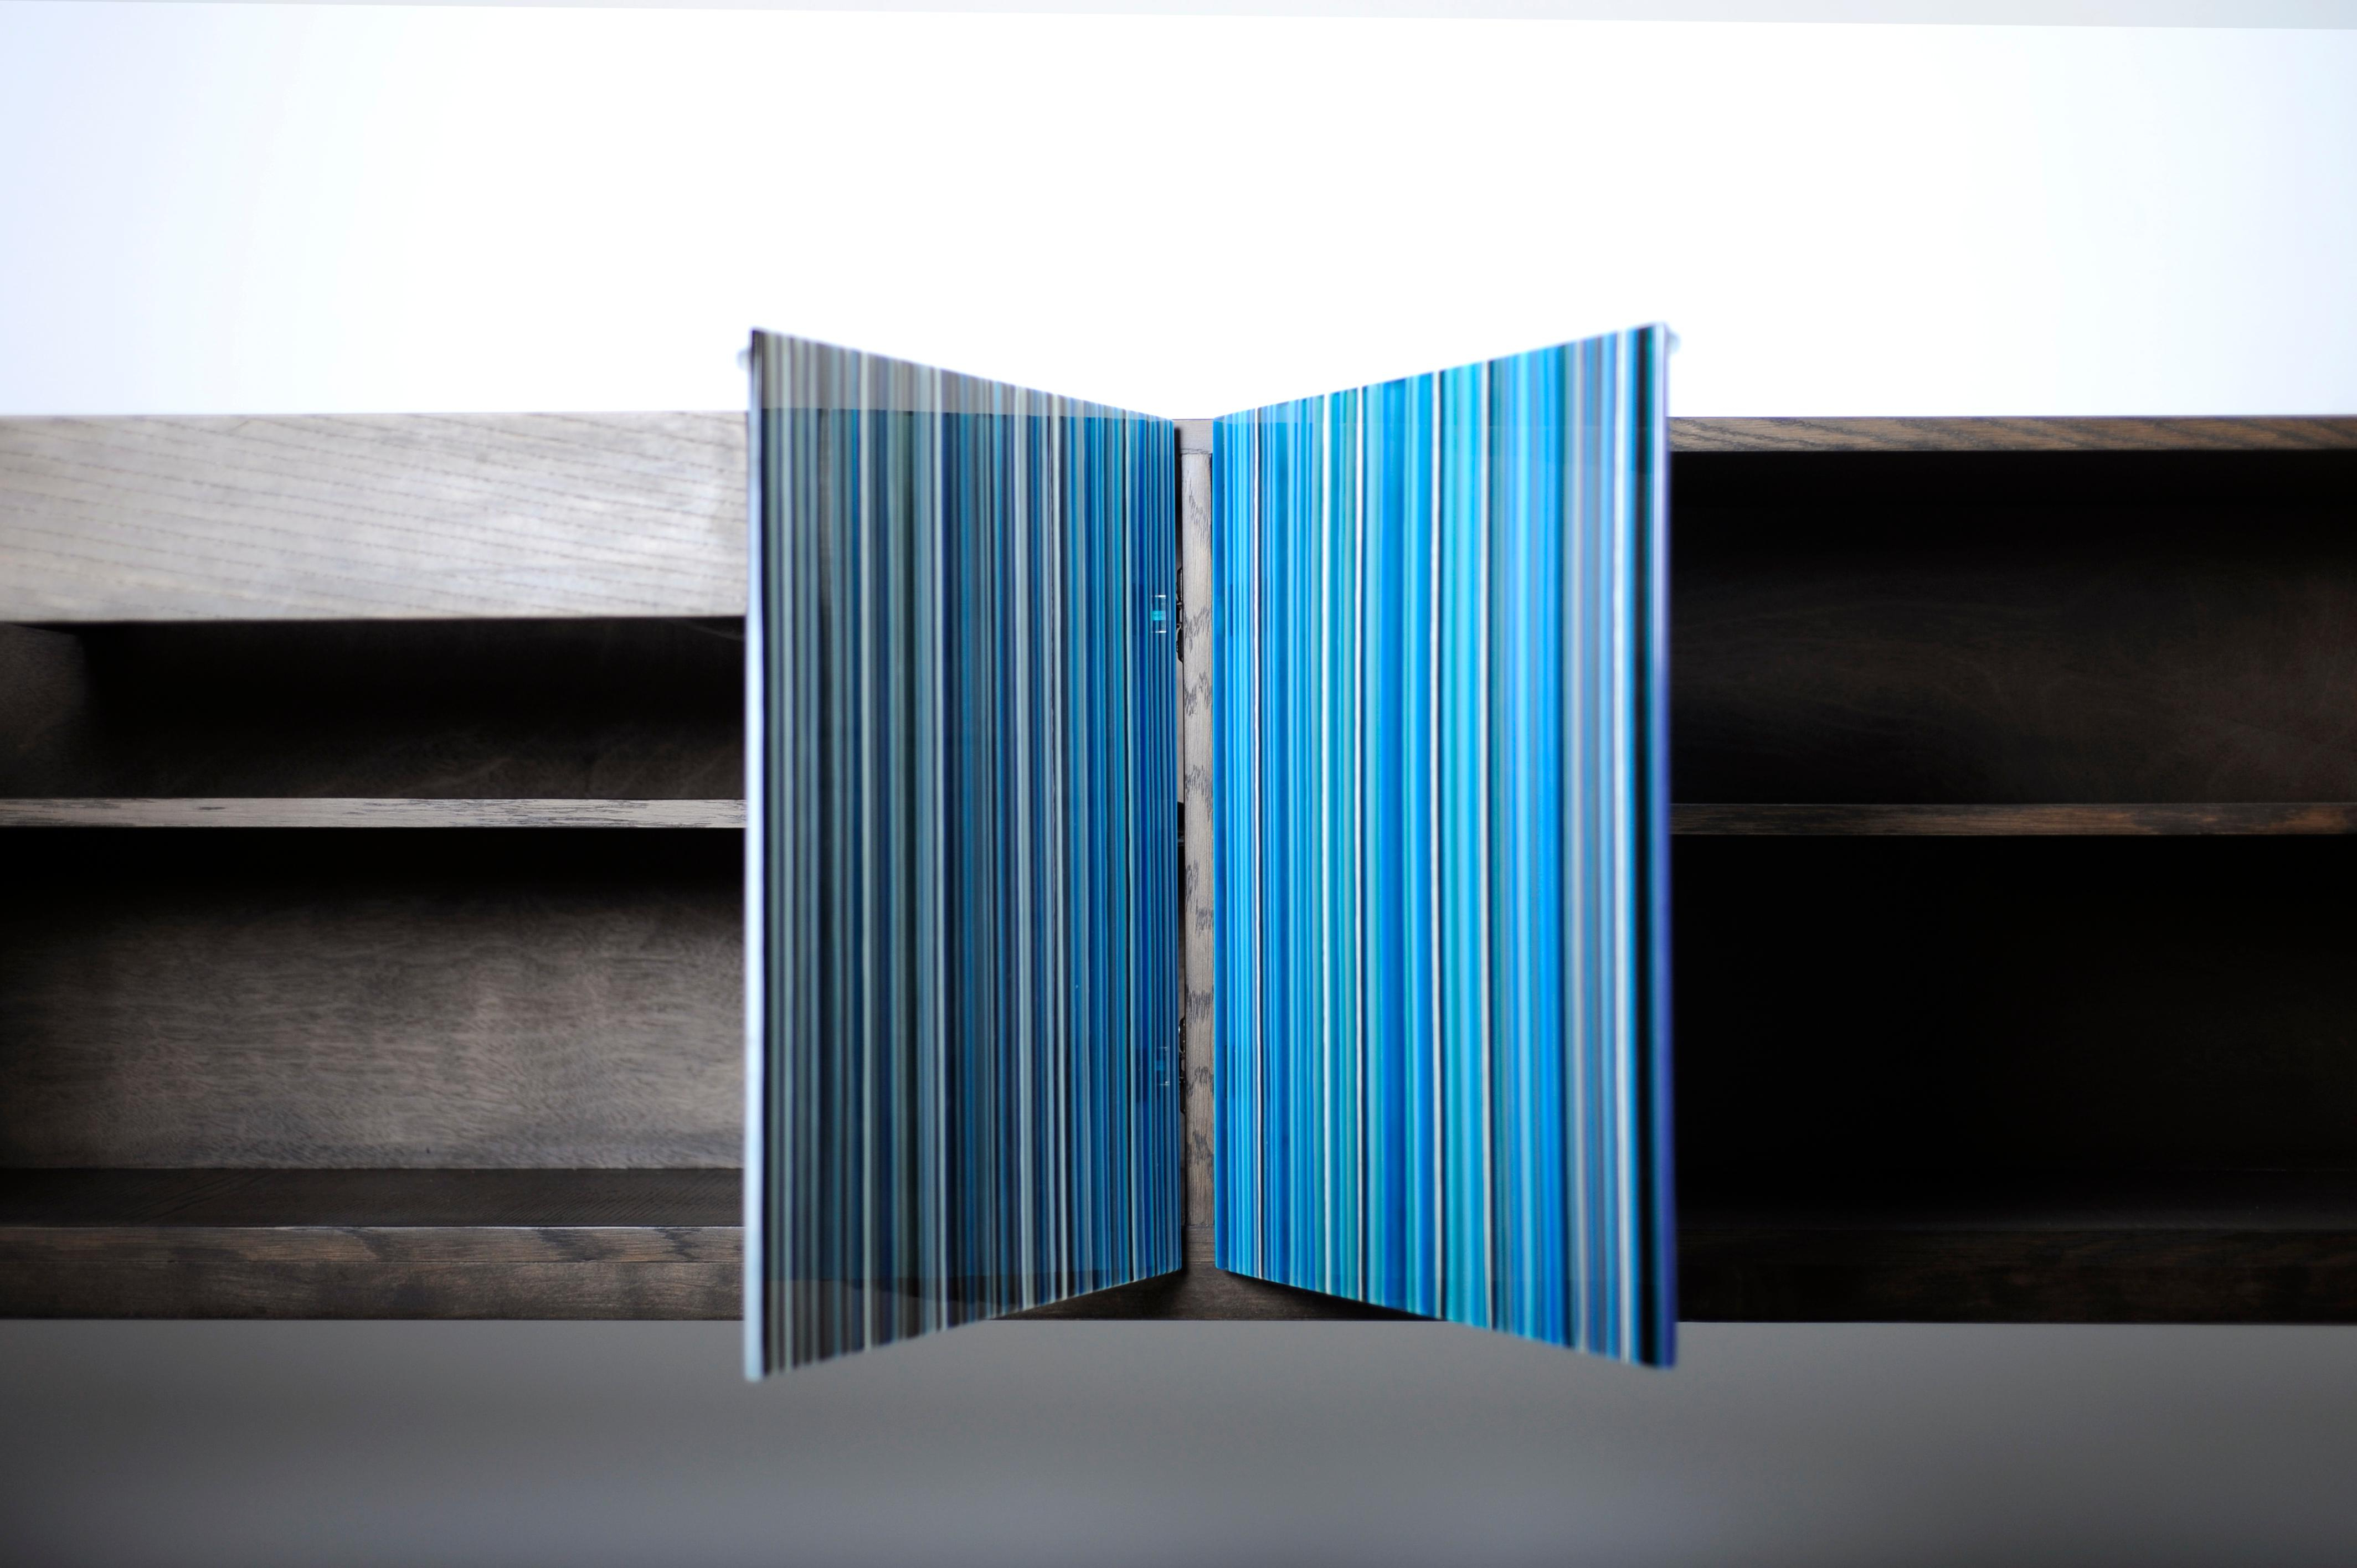 Retro Style Buffet Credenza, Barcode Design In Colored Glass, Shades Of Blue Within Blue Stained Glass Credenzas (View 16 of 20)